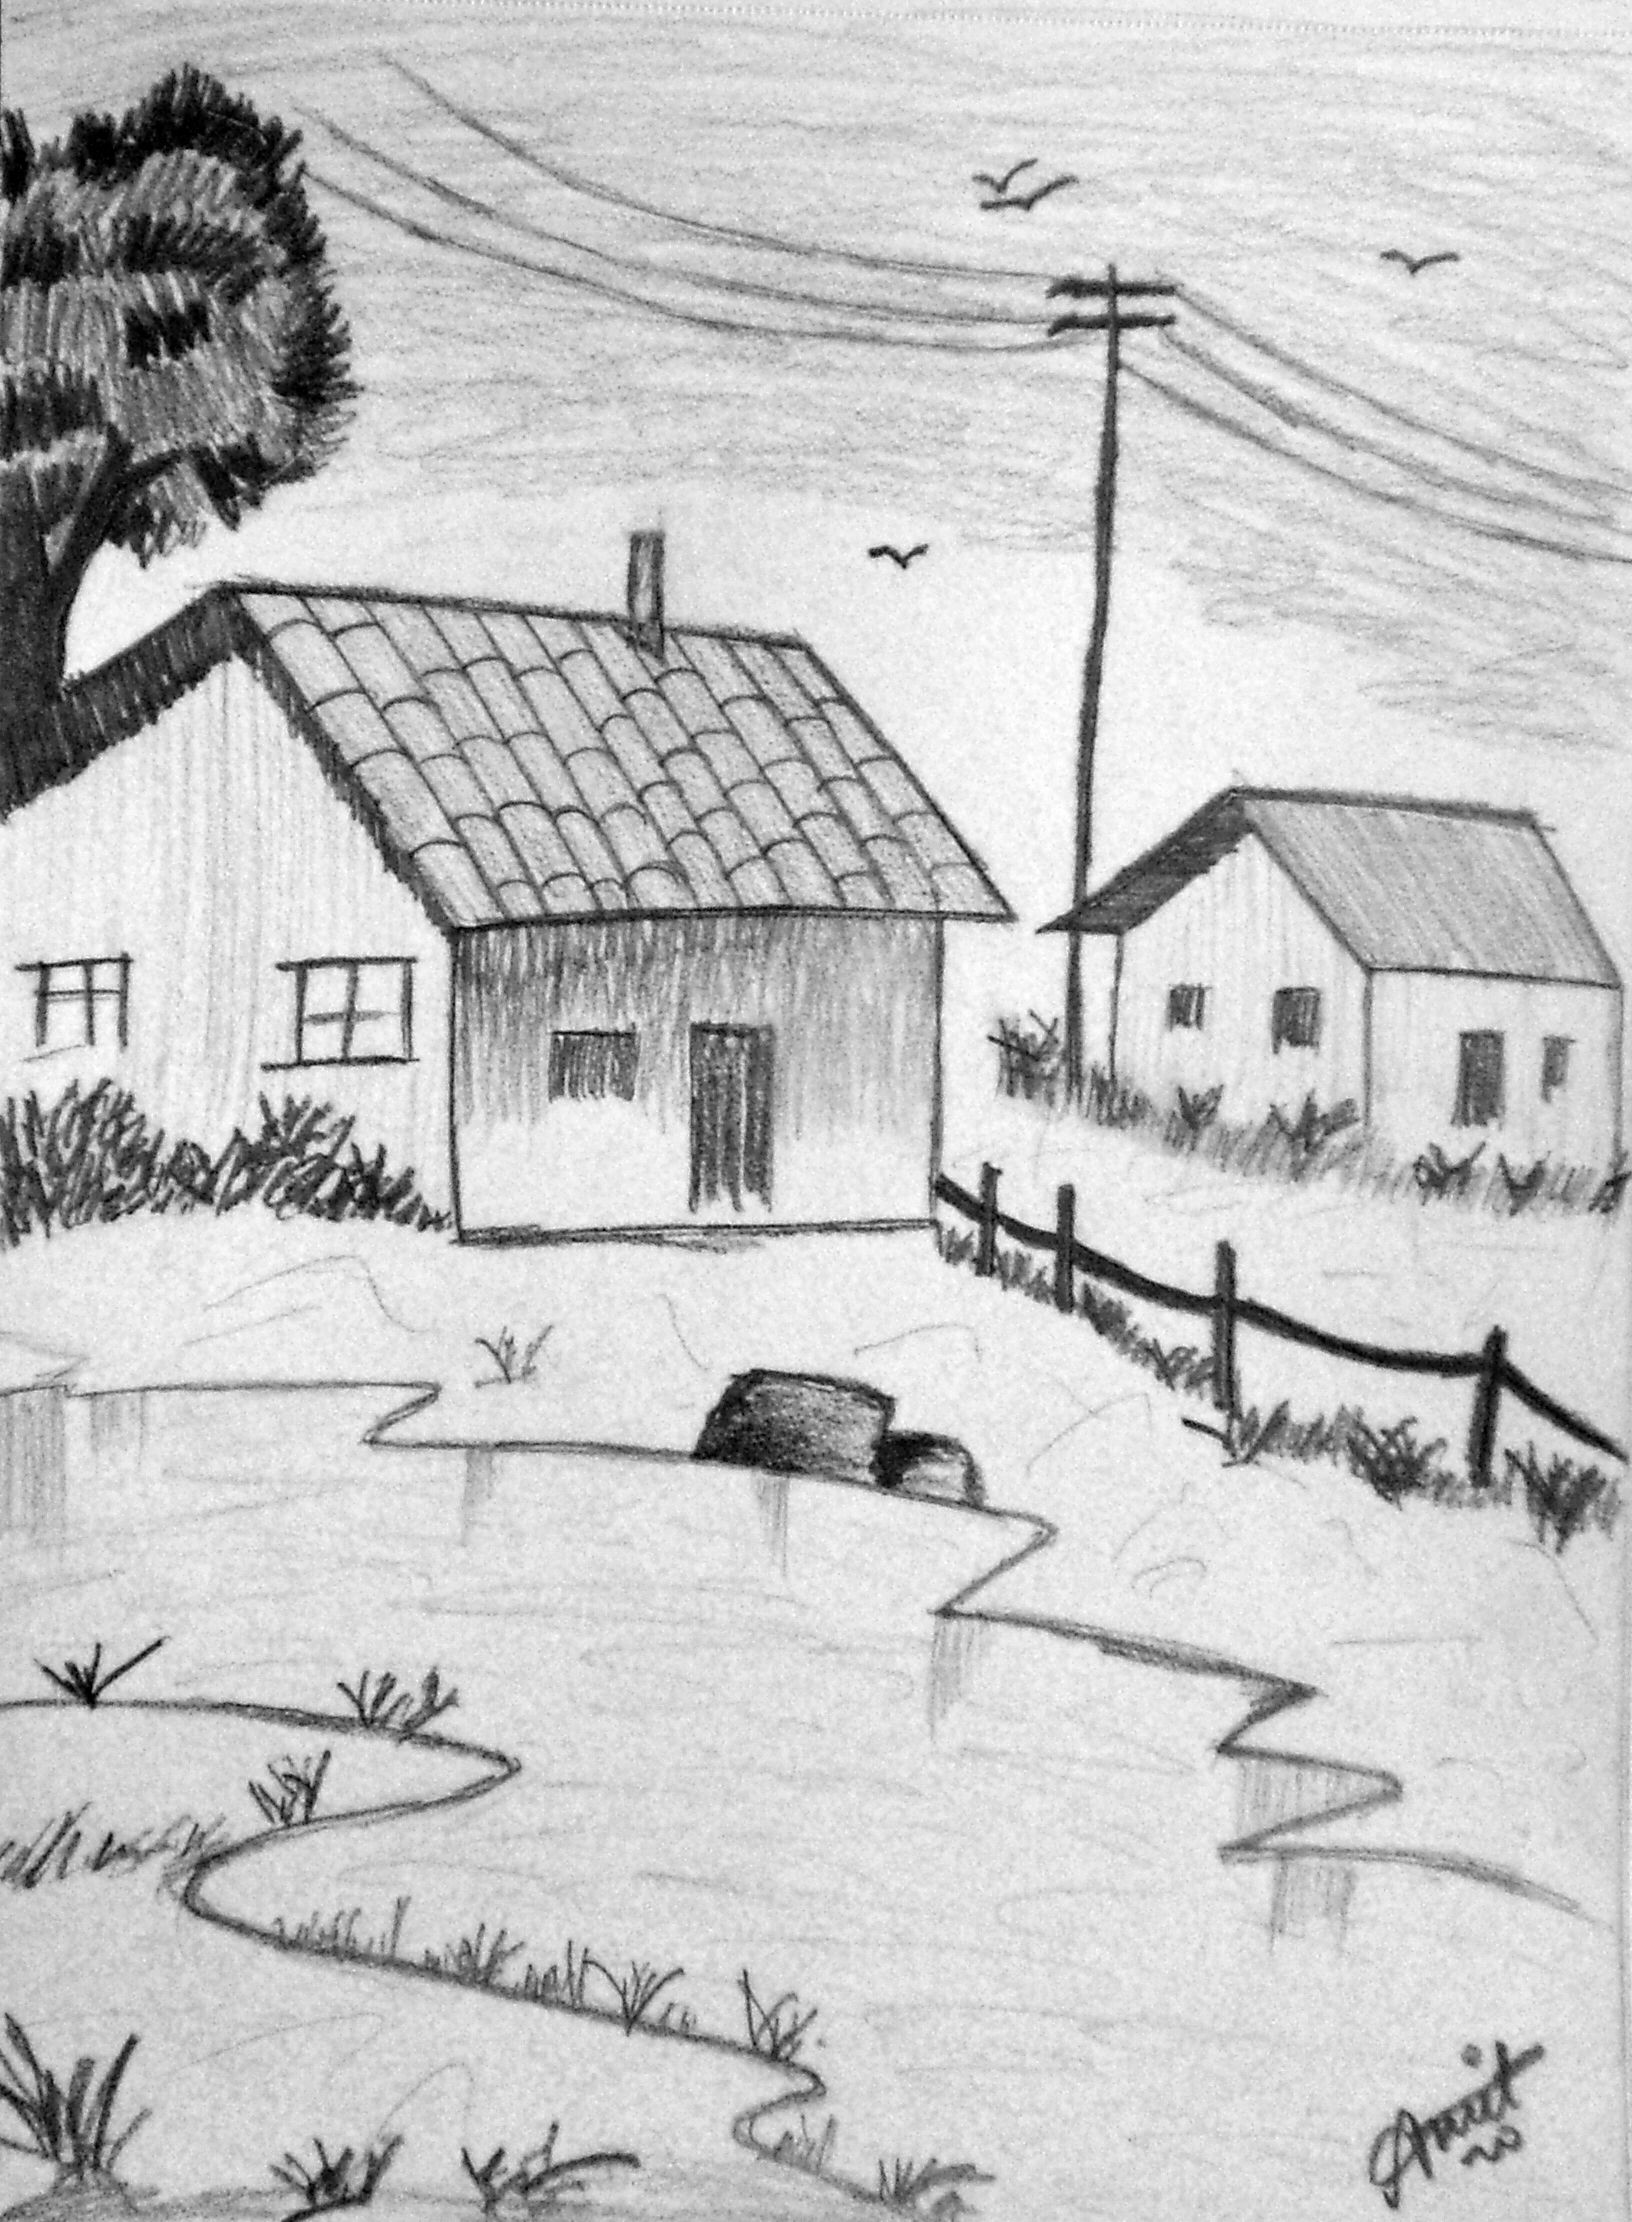 Simple Sketch Of Scenery Drawing Scenery Sketch Simple Sketch Landscape Pencil Drawings Landscape Drawing Easy Pencil Drawings Of Nature